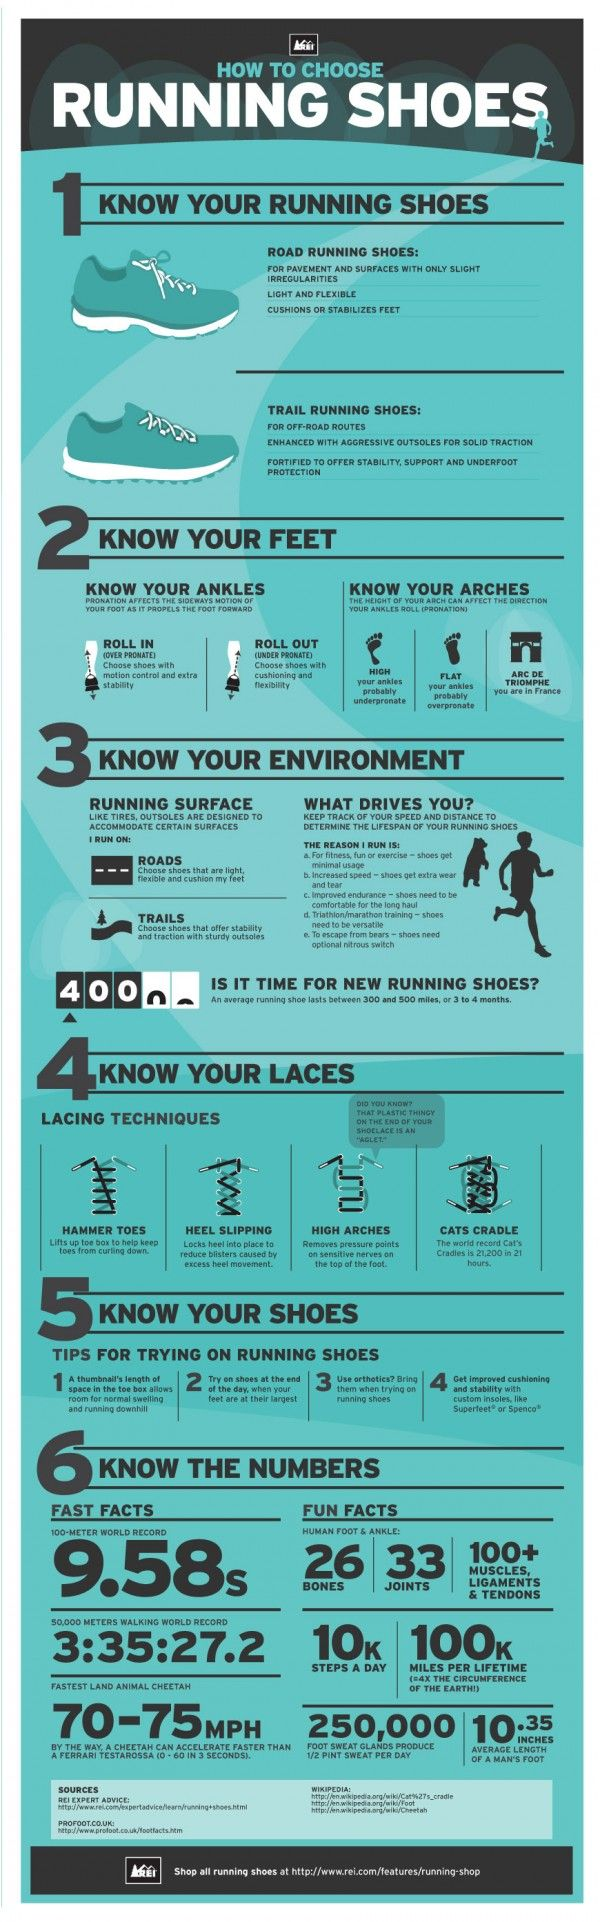 How to choose your running shoes? because, like, someone might want to know.